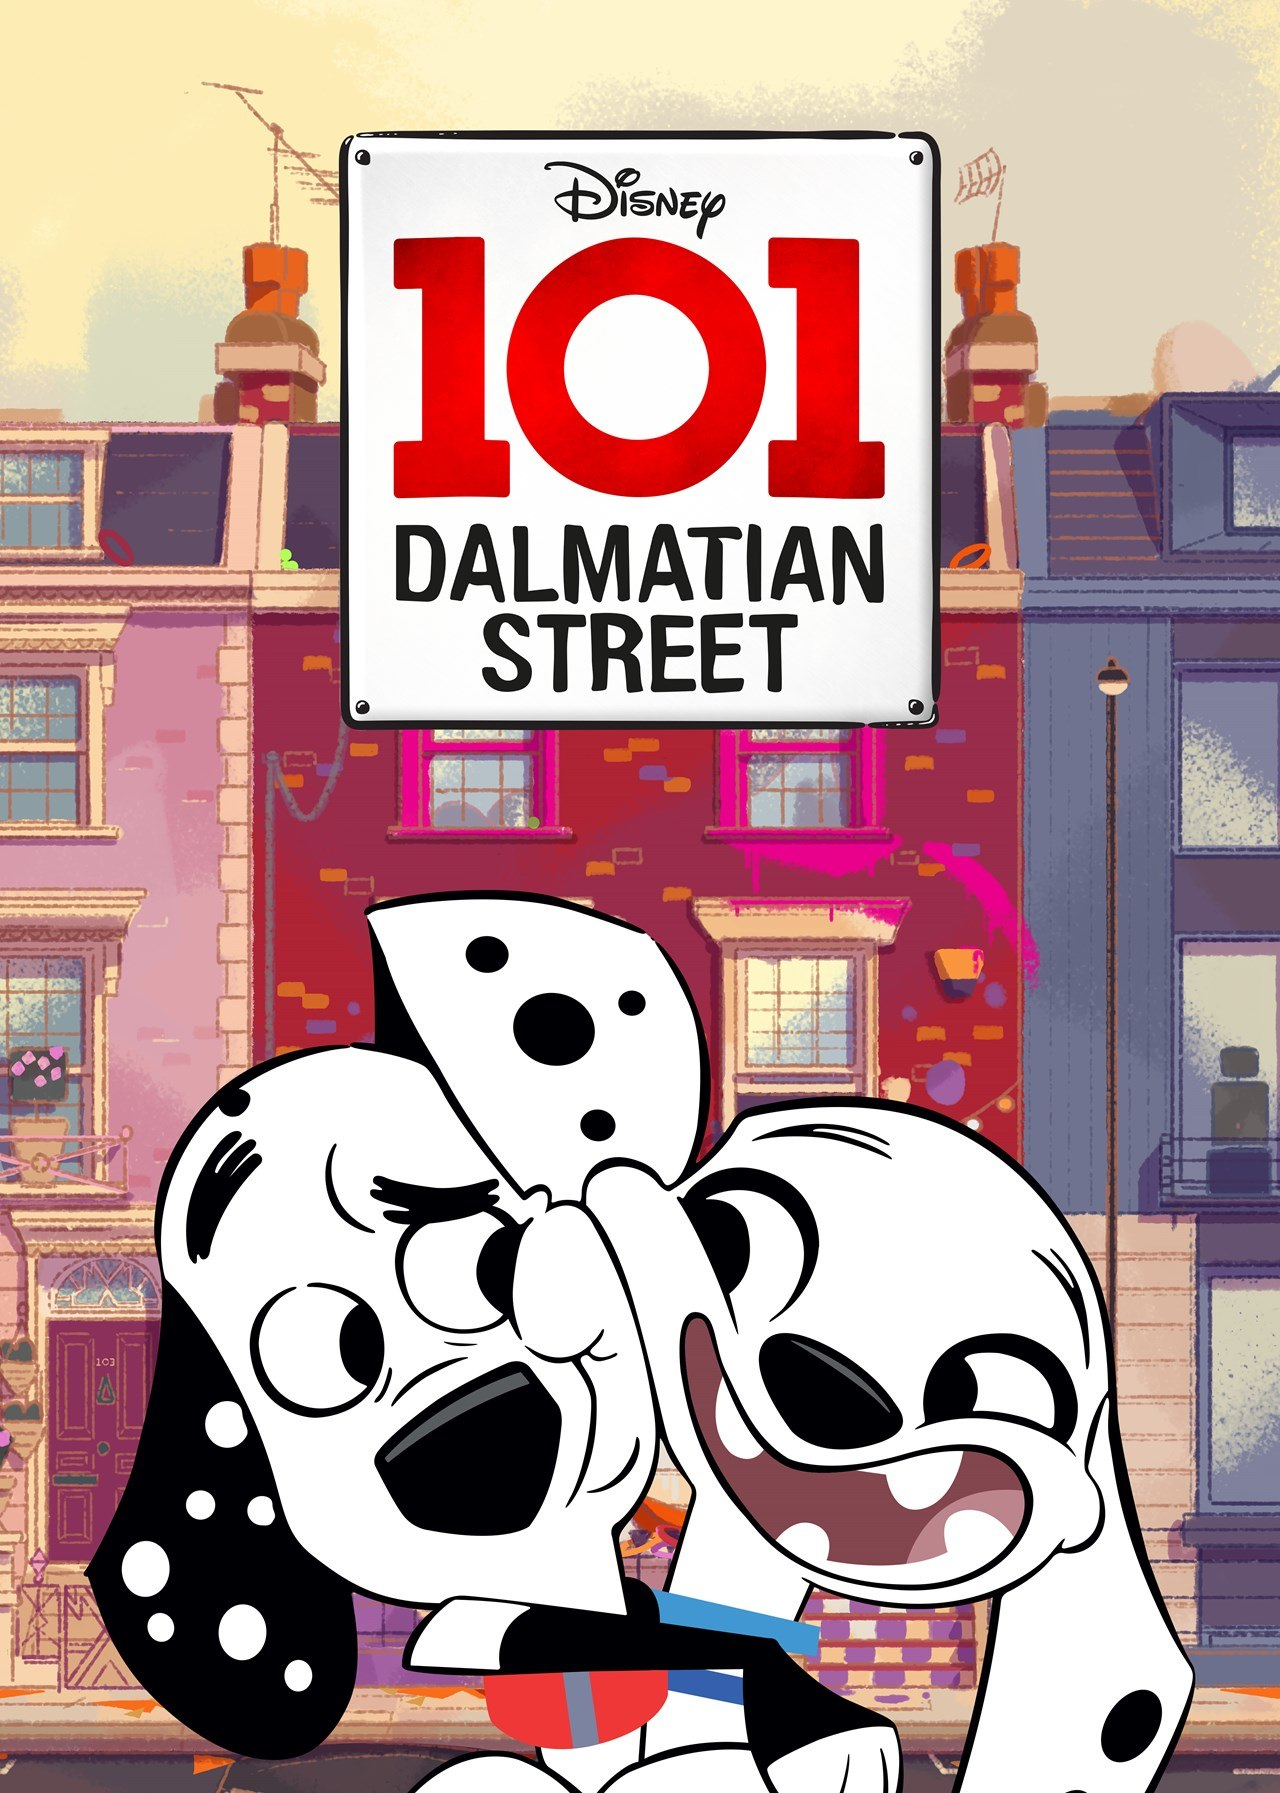 New Voice Talent Spotted for Disney's '101 Dalmatian Street